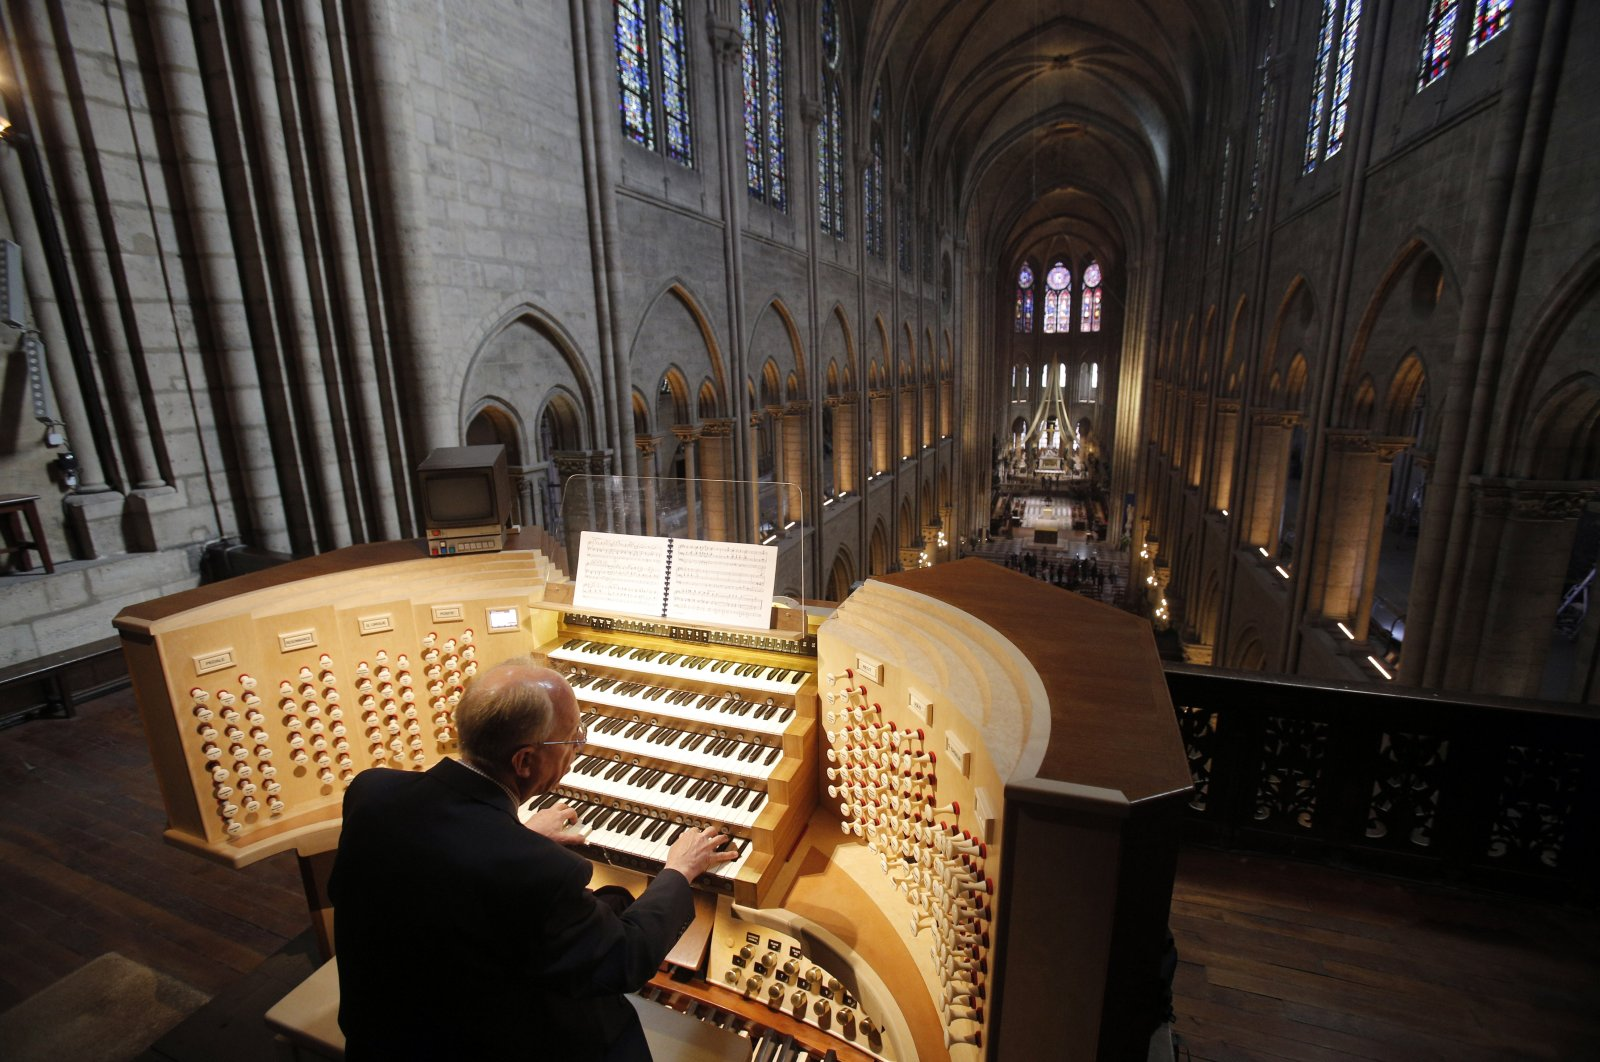 Philippe Lefebvre, 64, plays the organ at Notre Dame cathedral in Paris on May 2, 2013. (AP Photo)